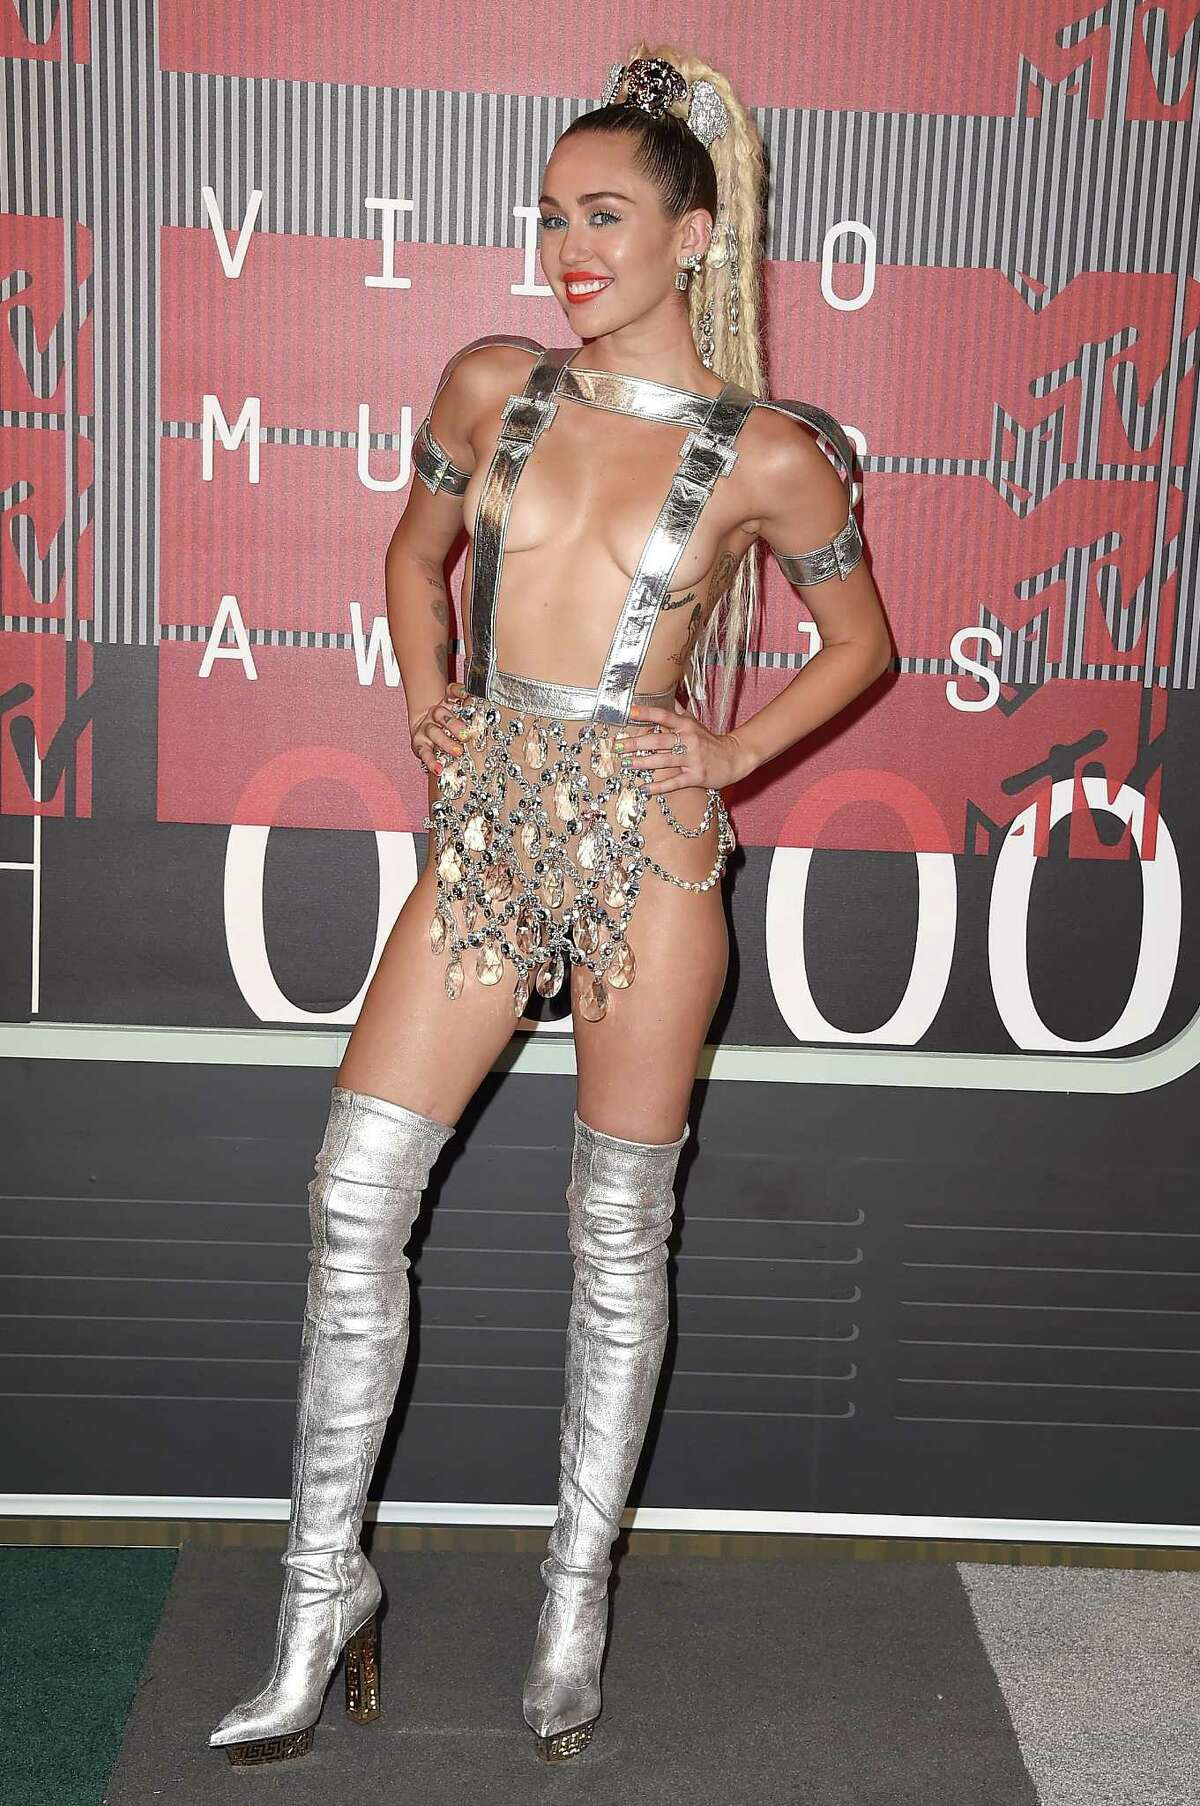 Singer Miley Cyrus attends the 2015 MTV Video Music Awards at Microsoft Theater on August 30, 2015 in Los Angeles, California. (Photo by Steve Granitz/WireImage)